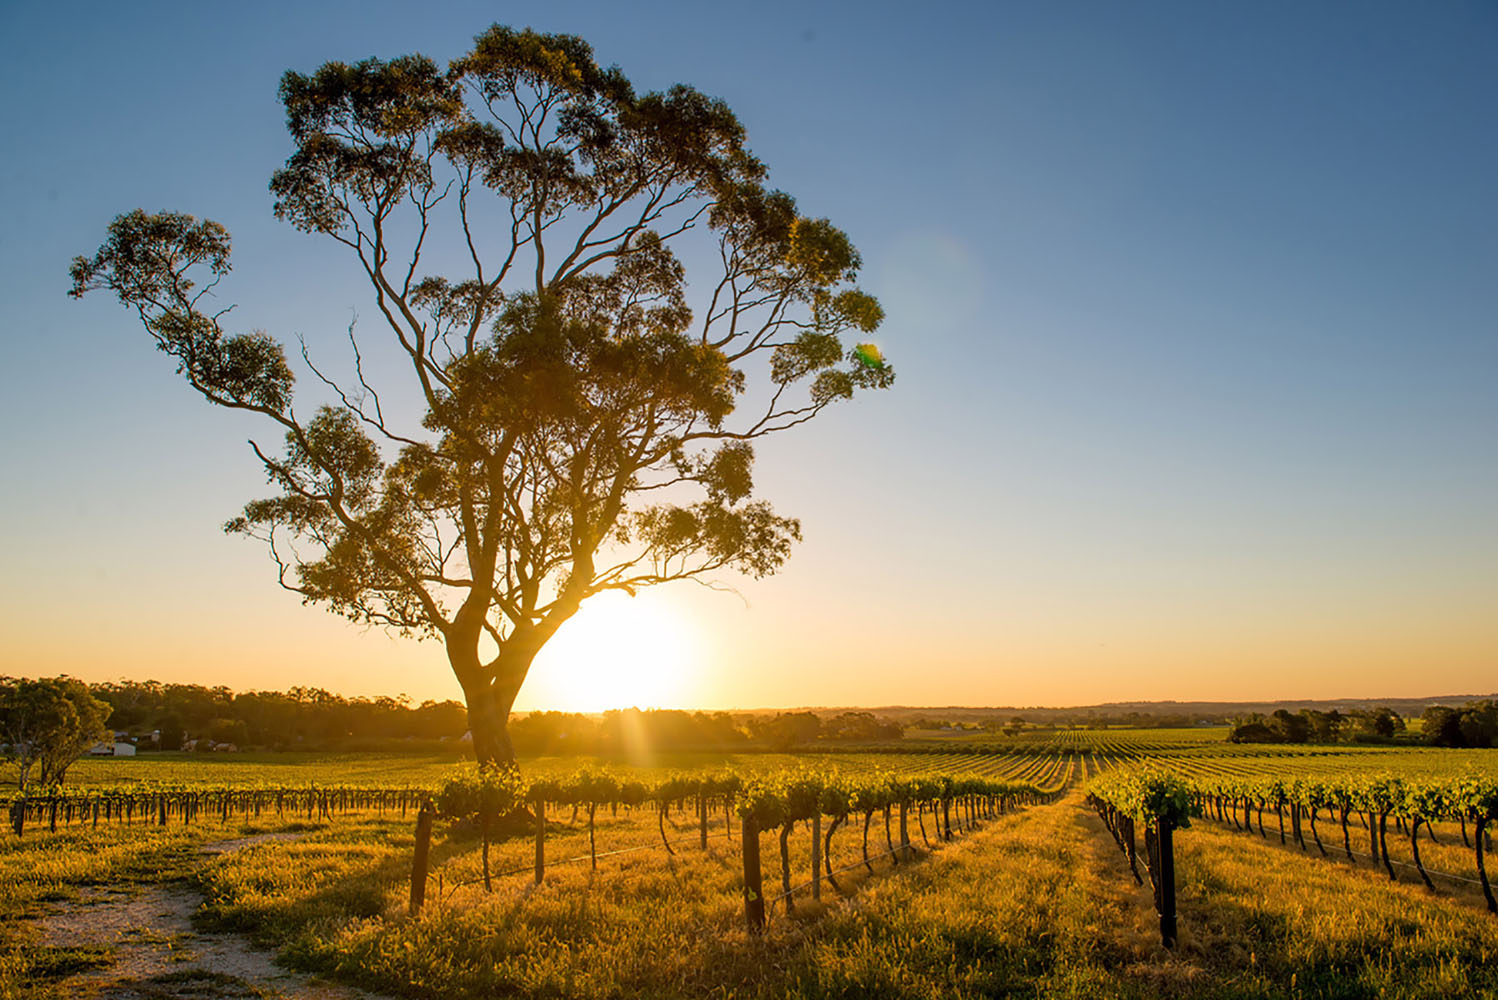 A vineyard in Australia at sunset.